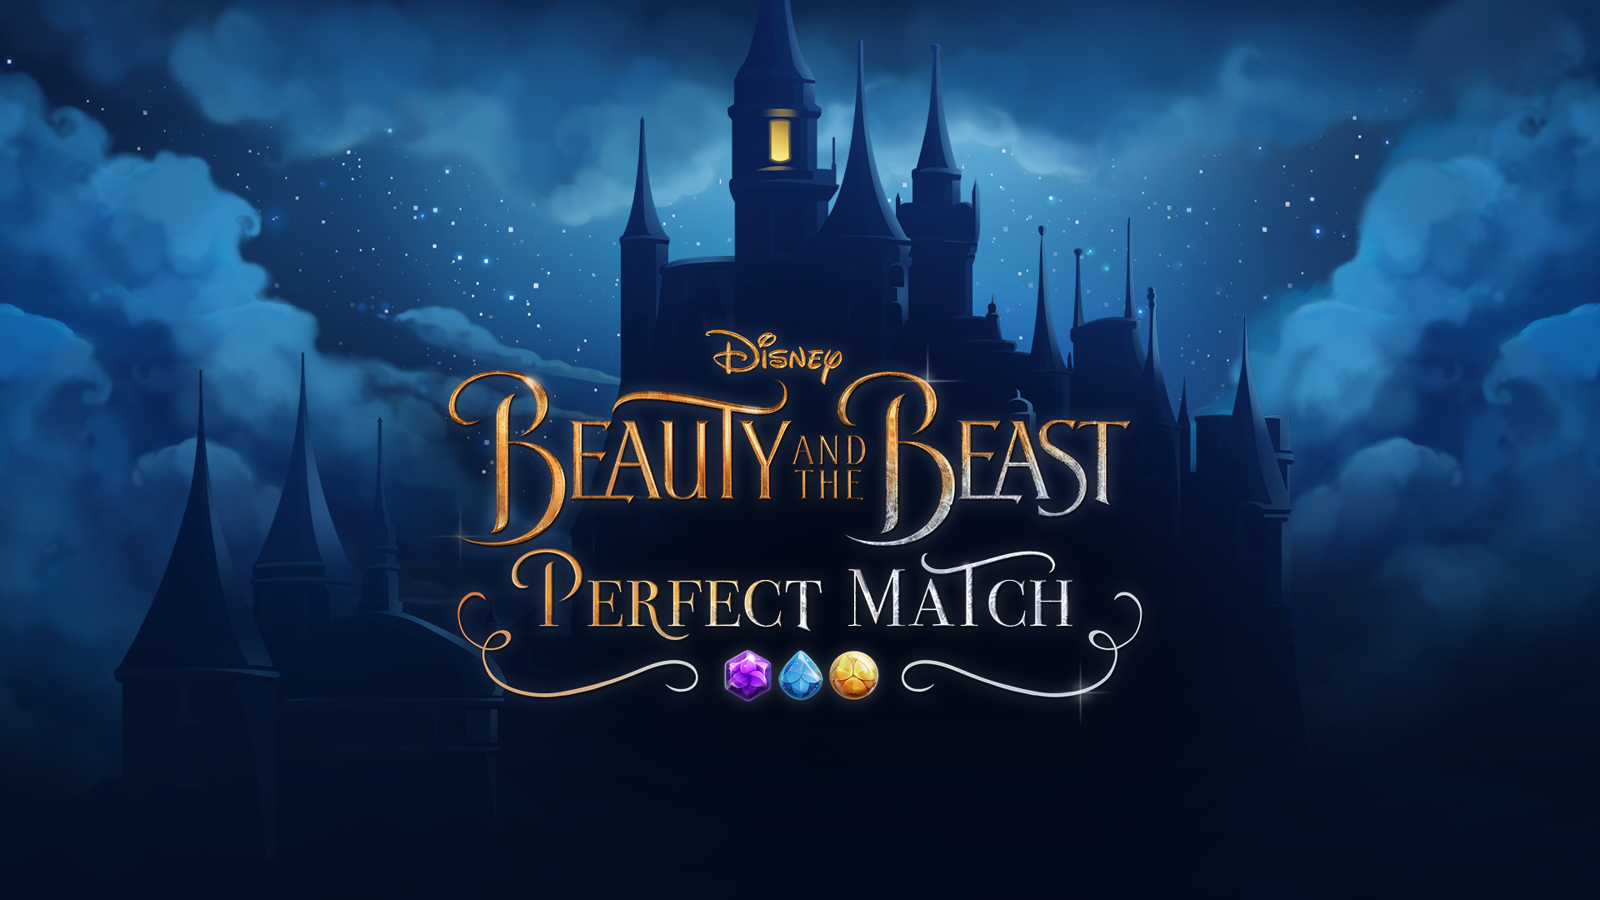 Beauty And The Beast Perfect Match Available Now For Mobile Devices Diskingdom Com Disney Marvel Star Wars Merchandise News